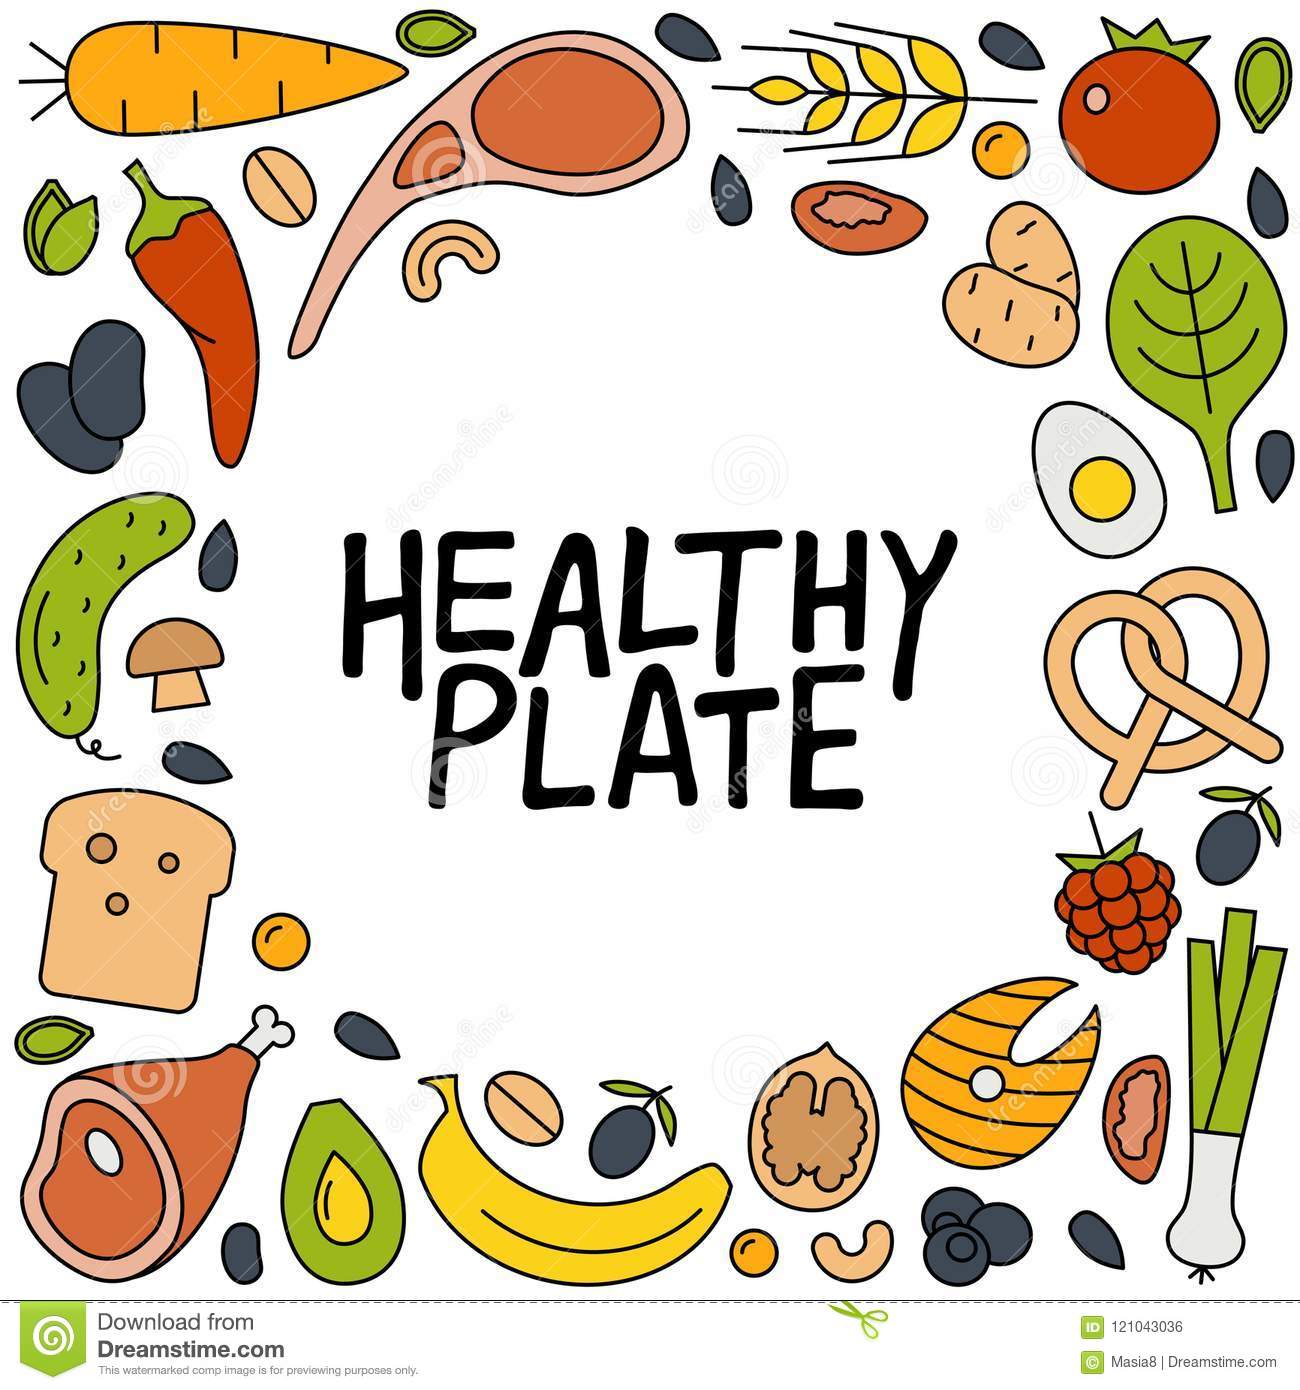 Healthy Plate Hand Drawn Lettering Stock Illustration Illustration Of Graphic Concept 121043036